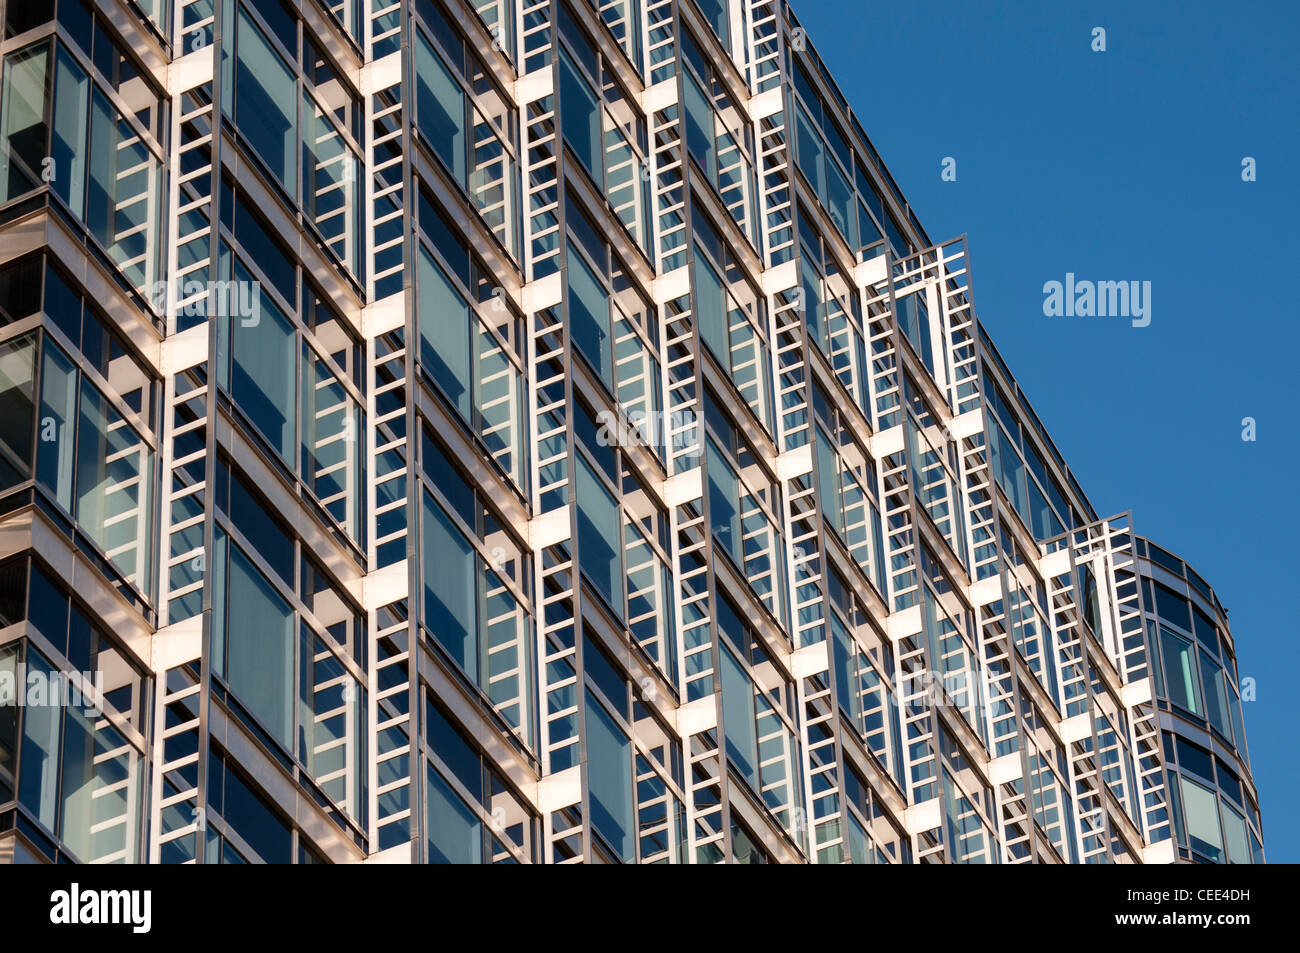 Facade Detail, Office Building at 20 Canada Square by Skidmore, Owings and Merrill, Canary Wharf, Docklands, London, - Stock Image